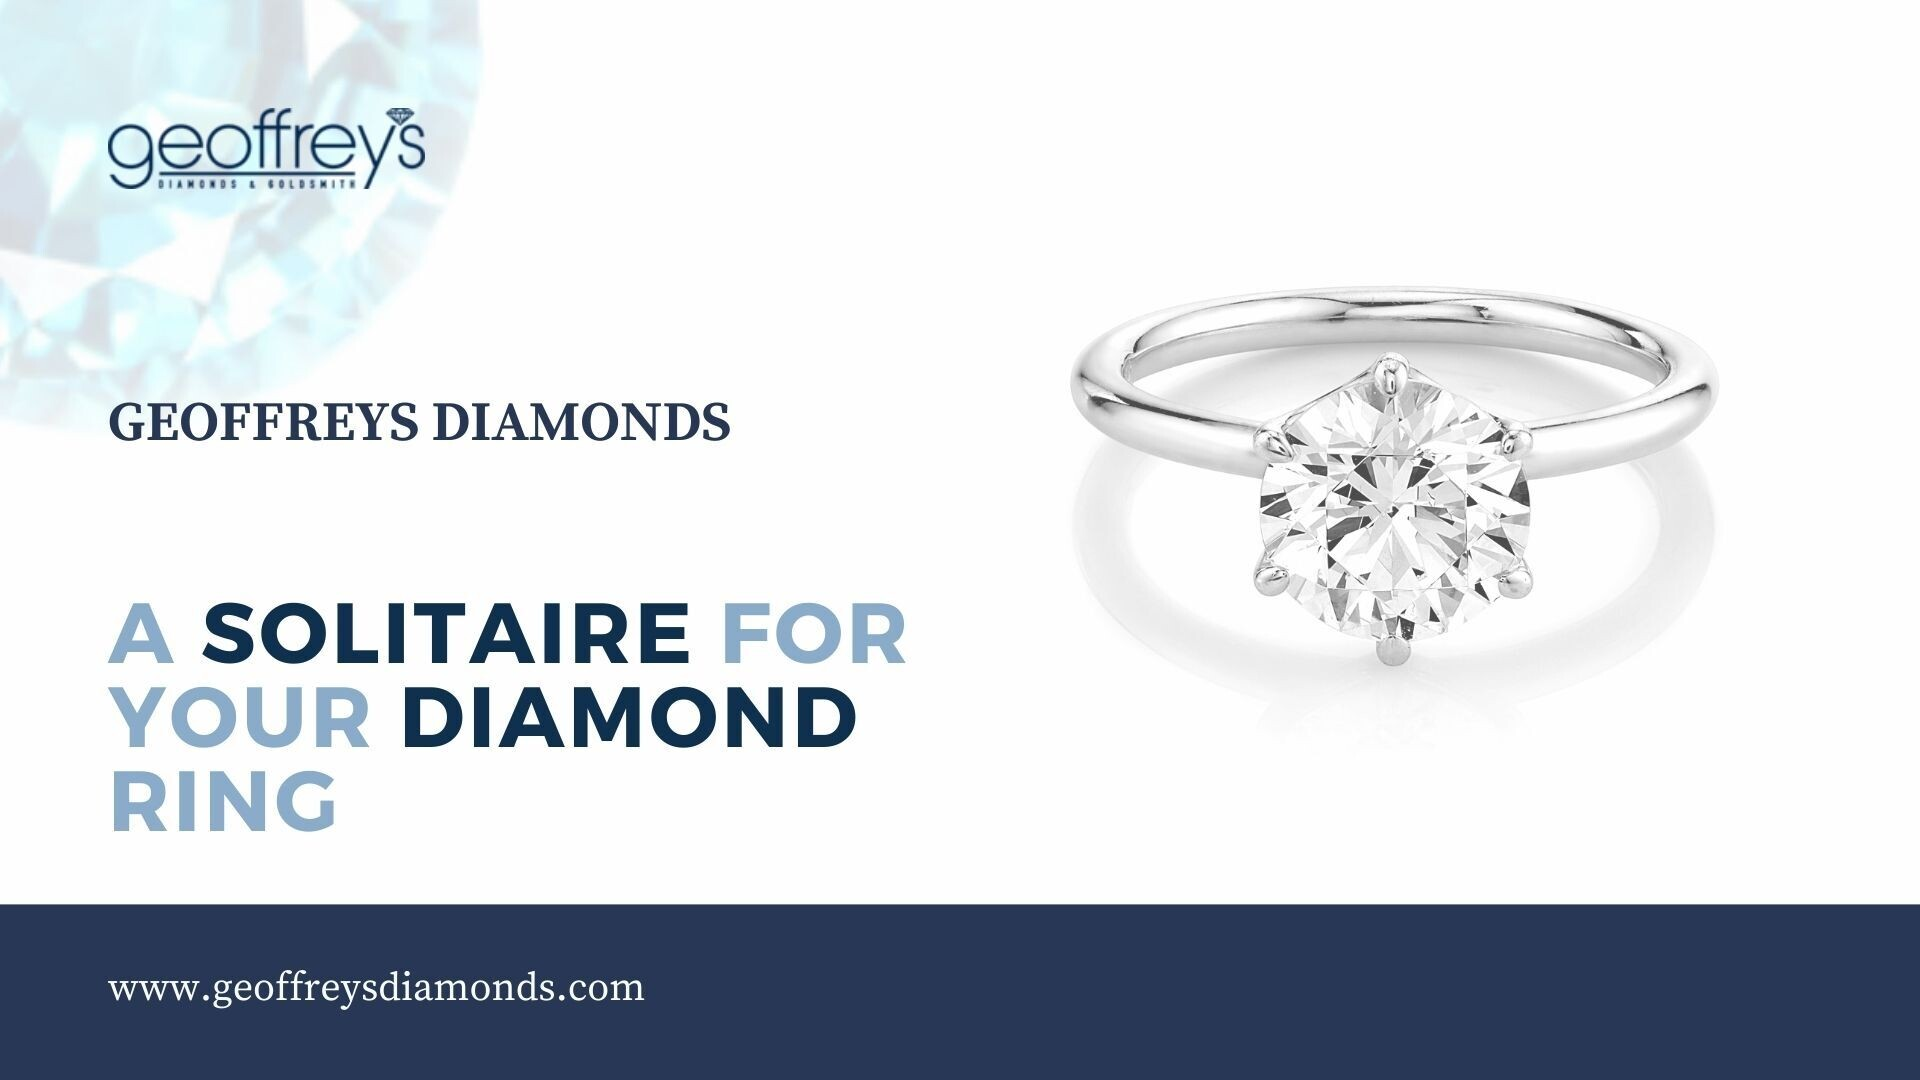 Choosing a solitaire for your diamond ring